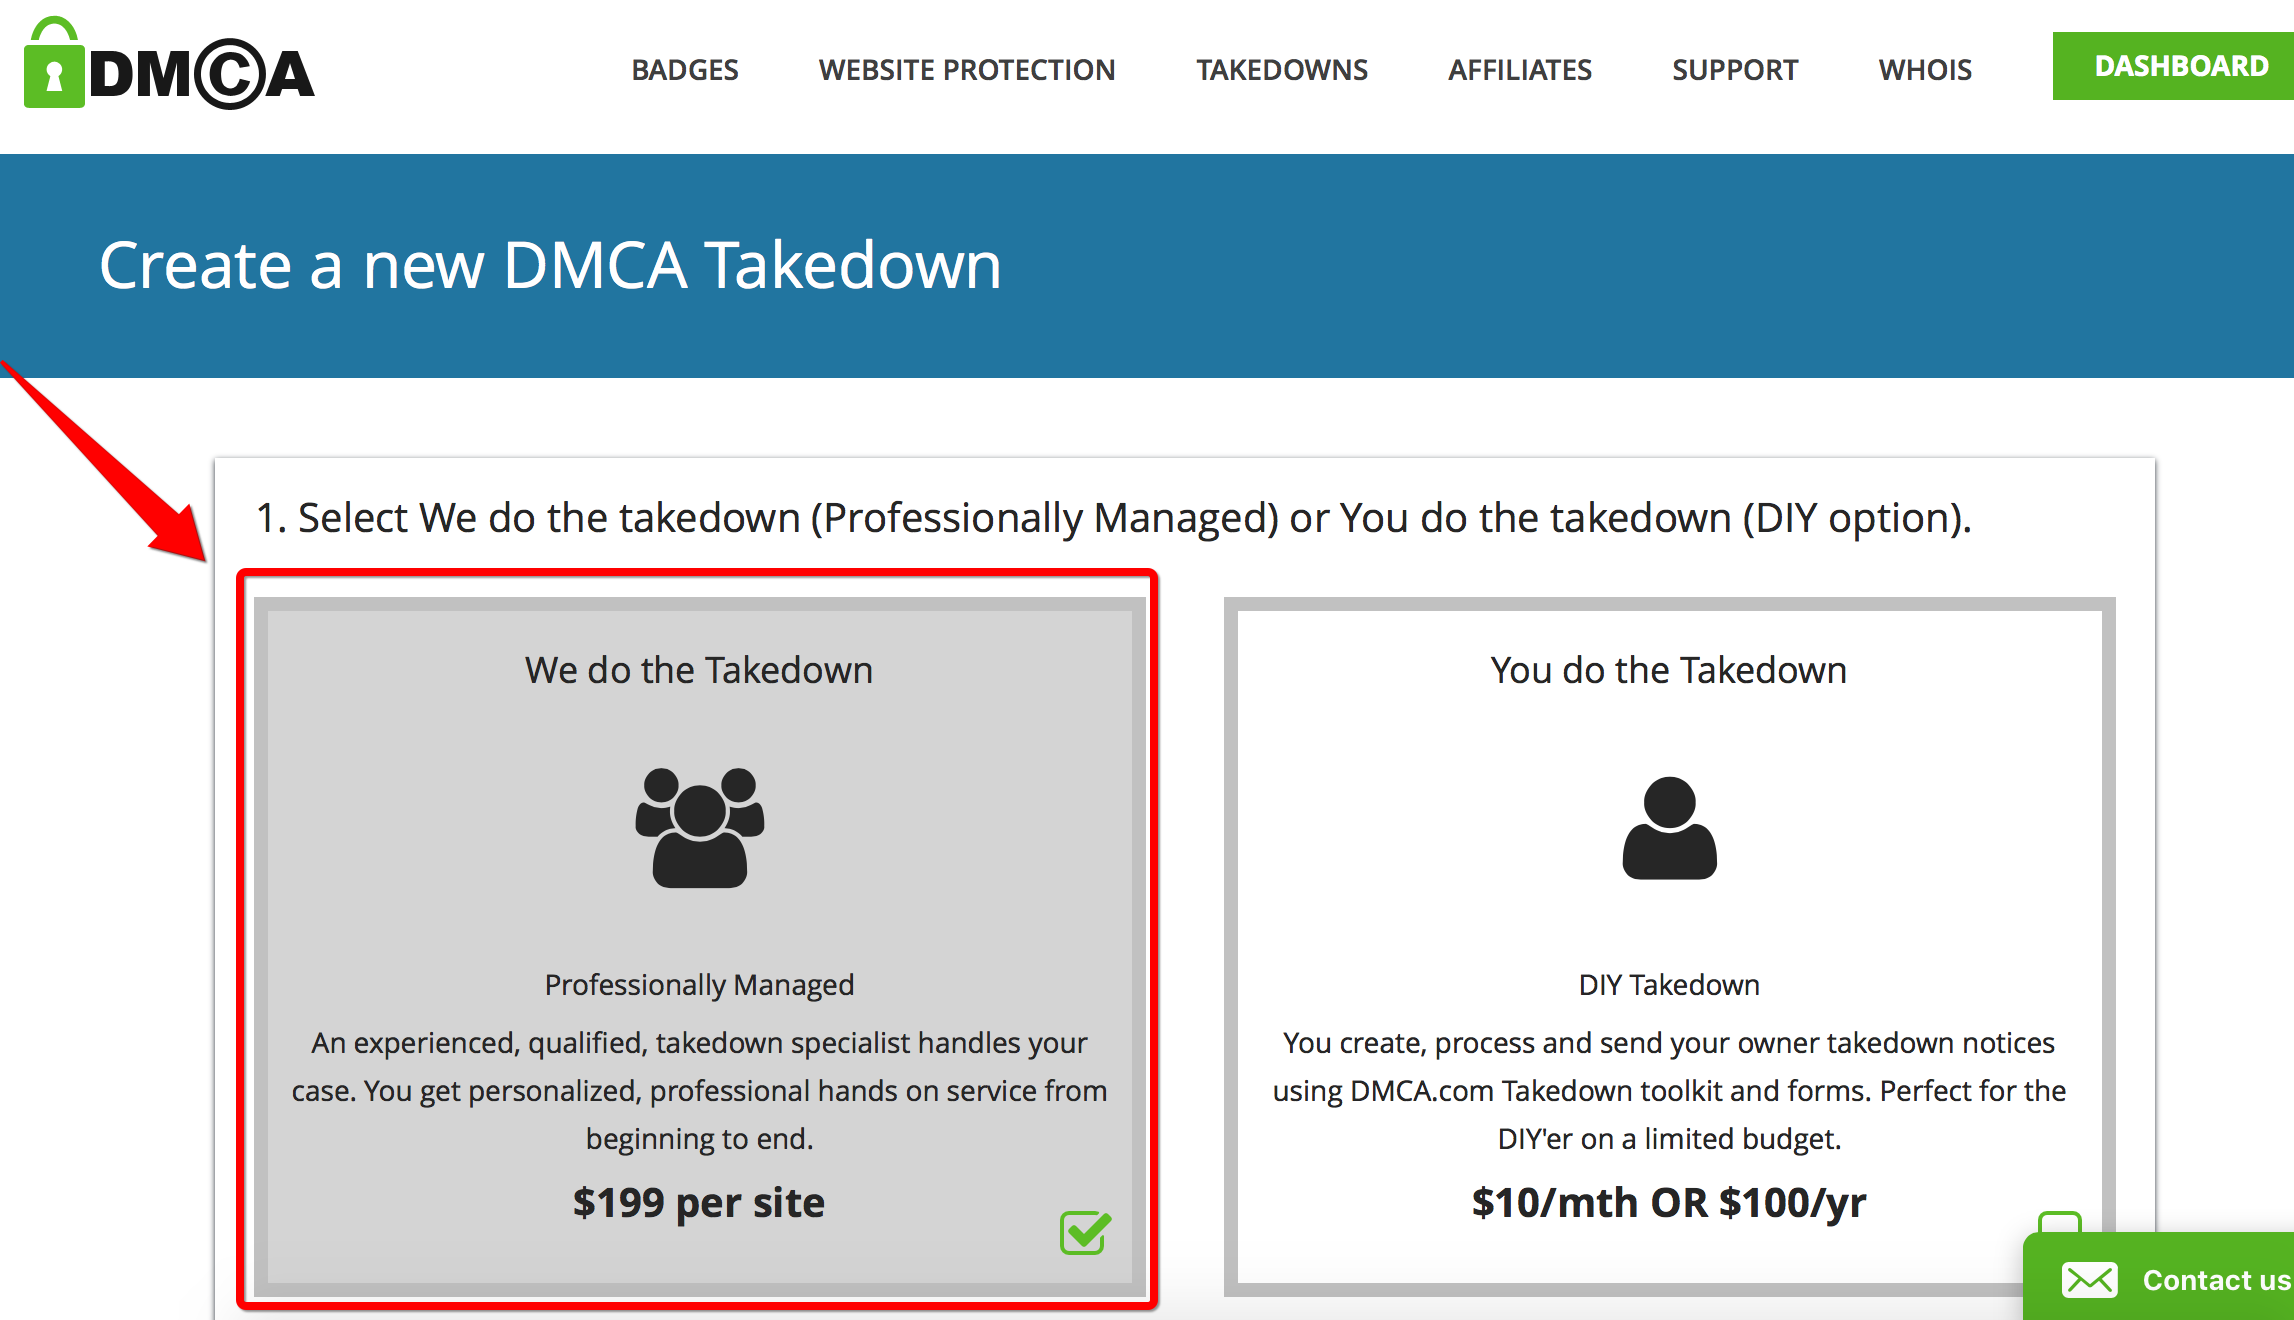 image of DMCA professional take down offer page